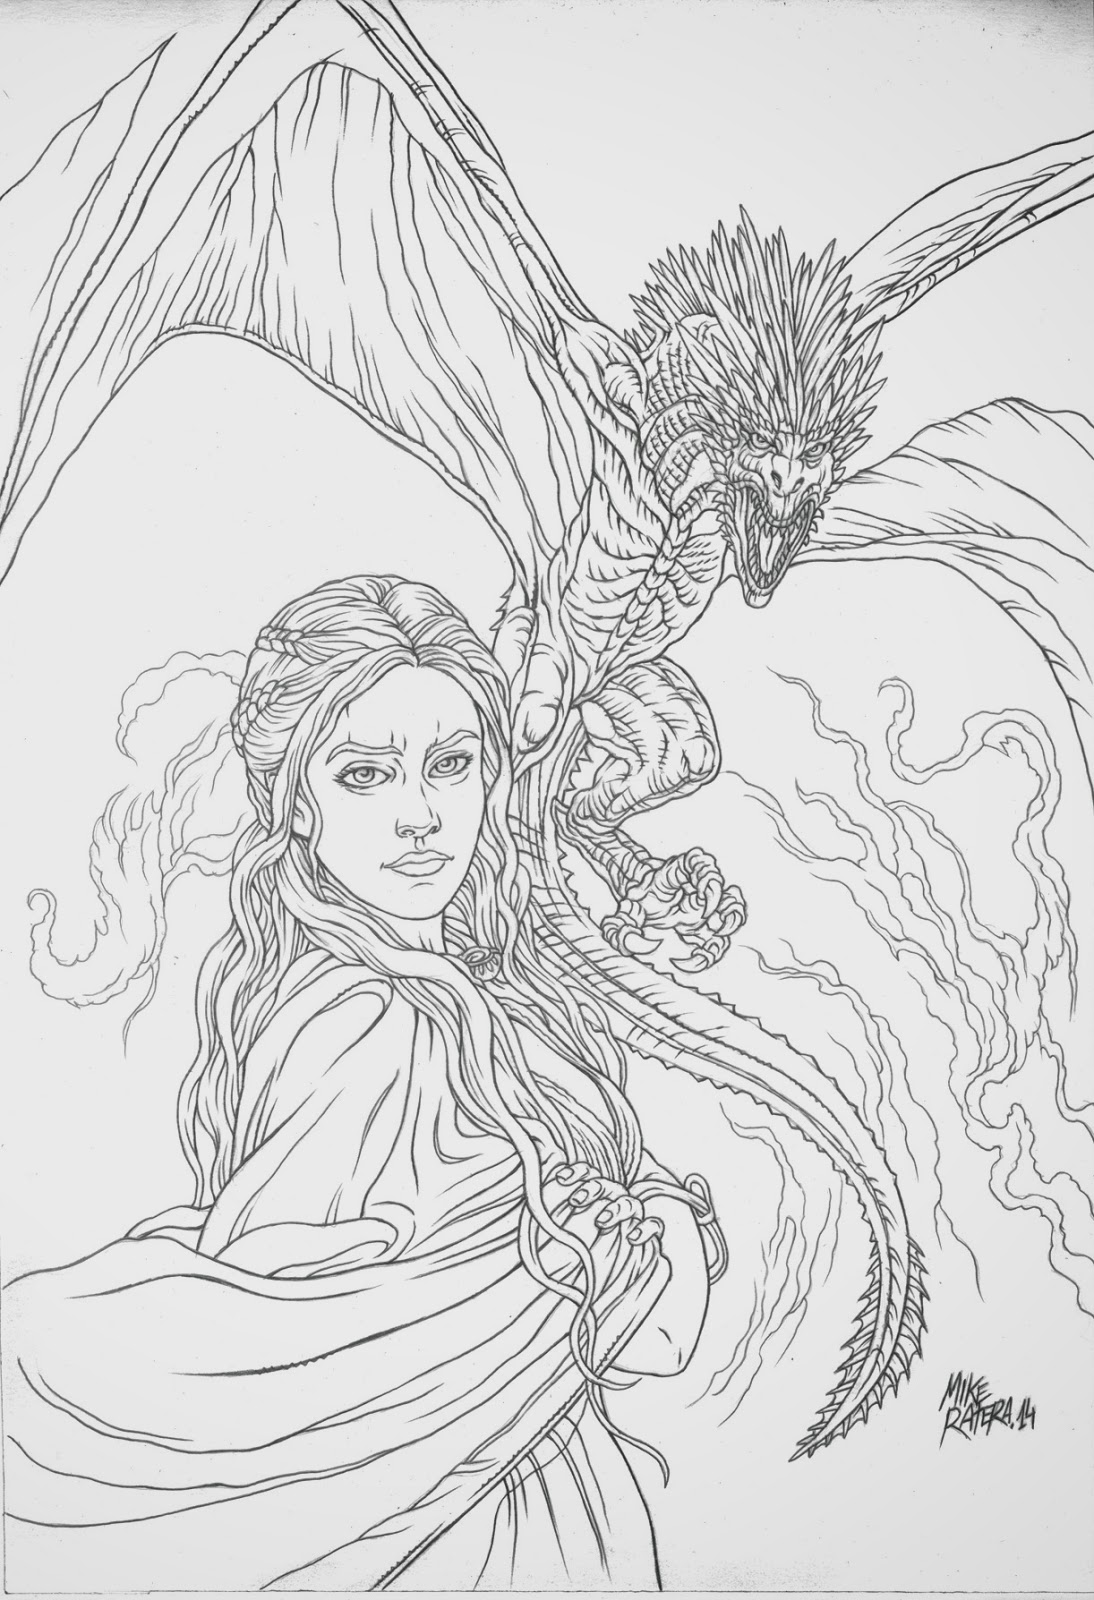 mike ratera artblog  daenerys drawings